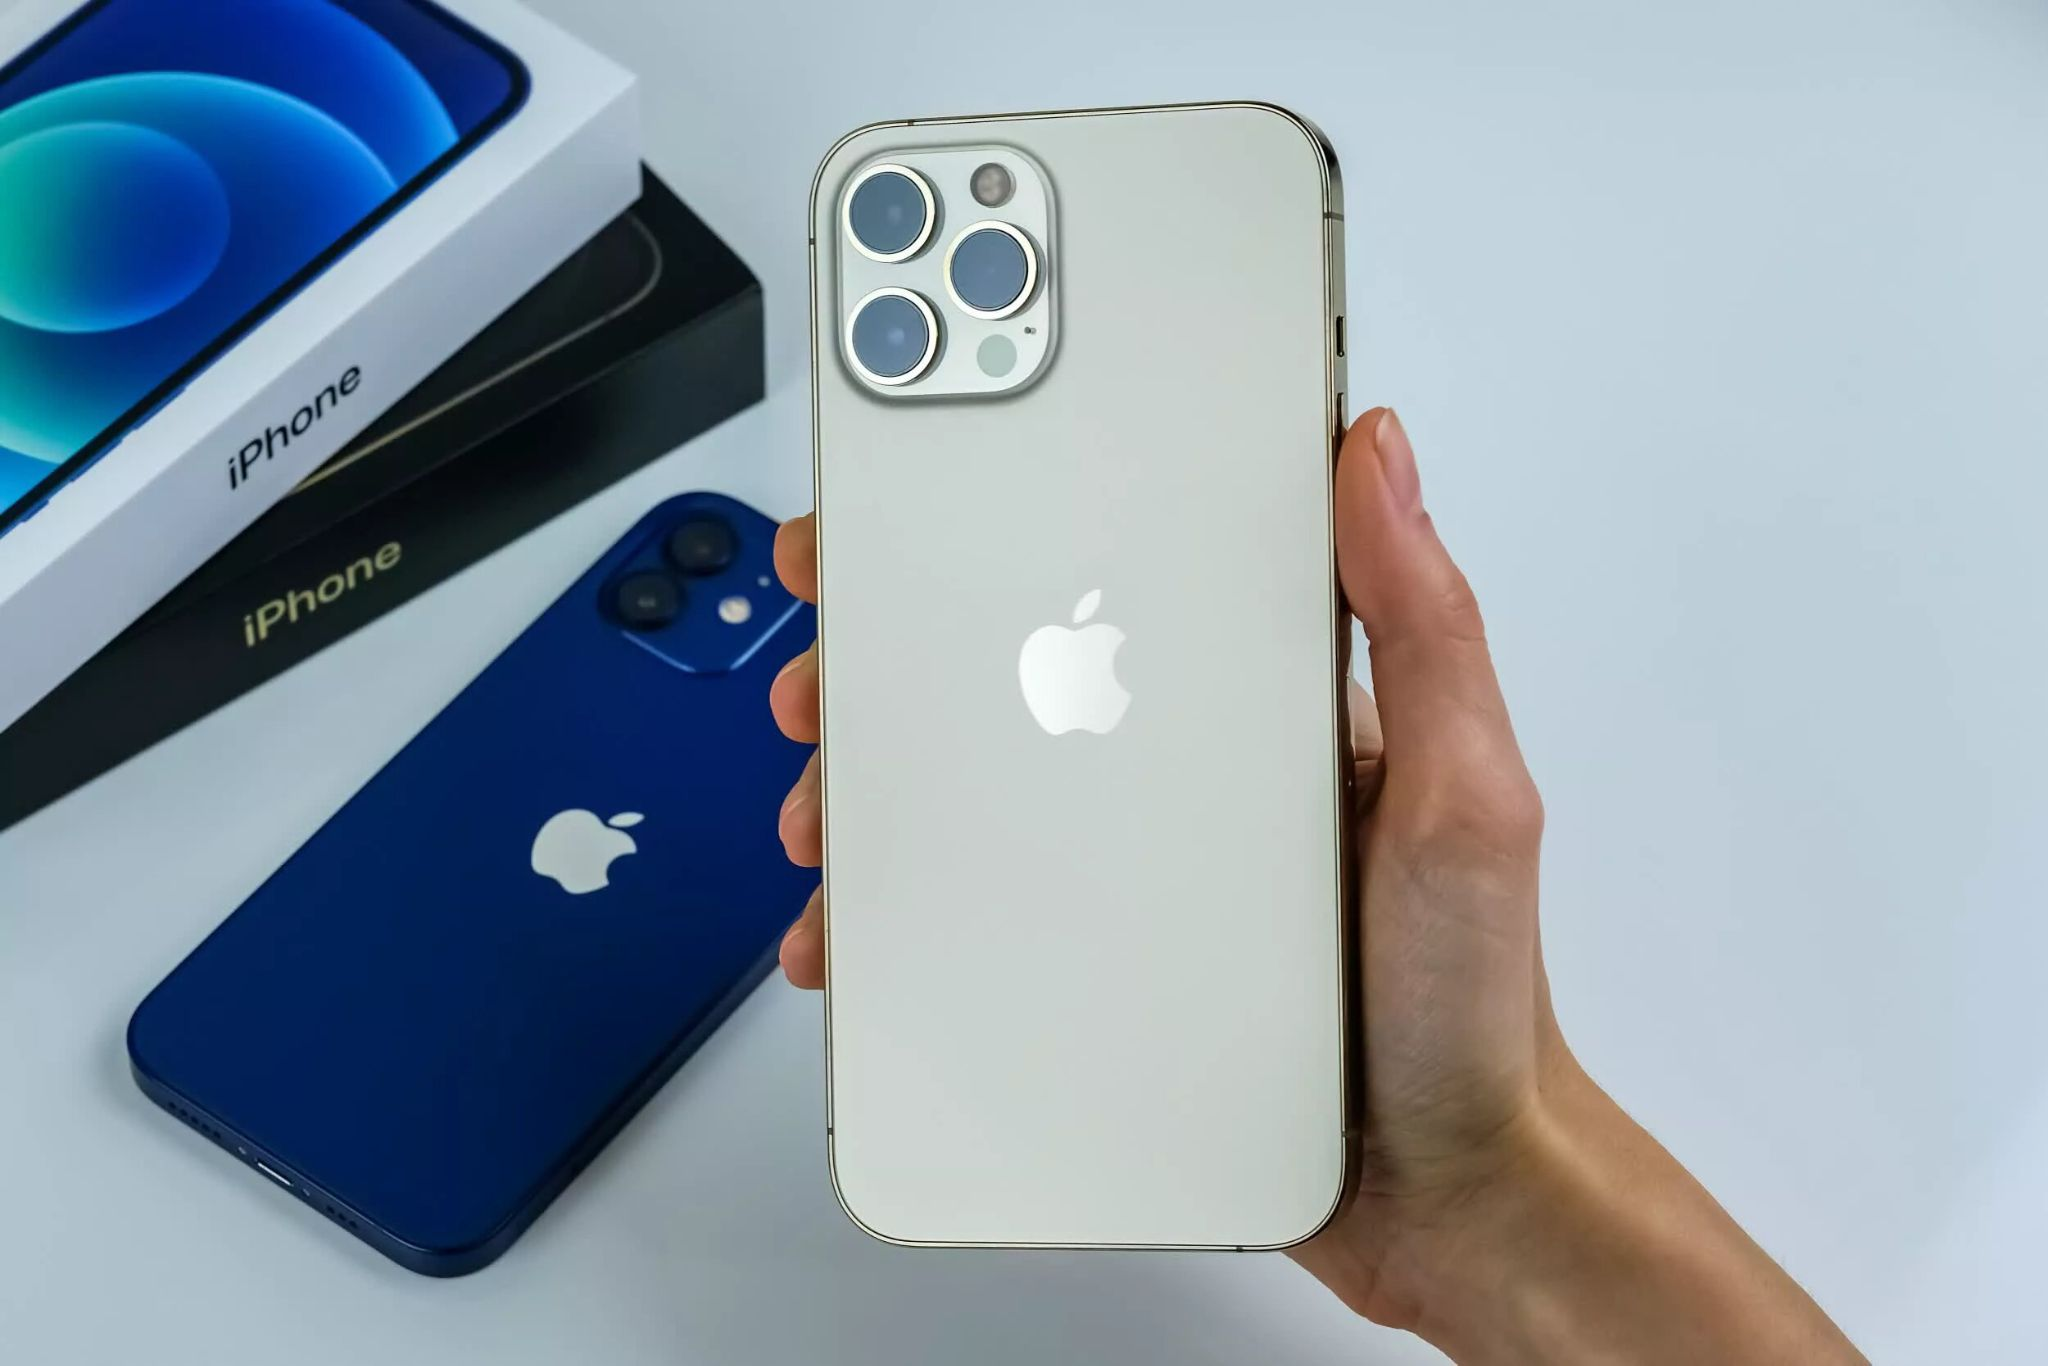 iPhone 12 Pro Max in two different colors